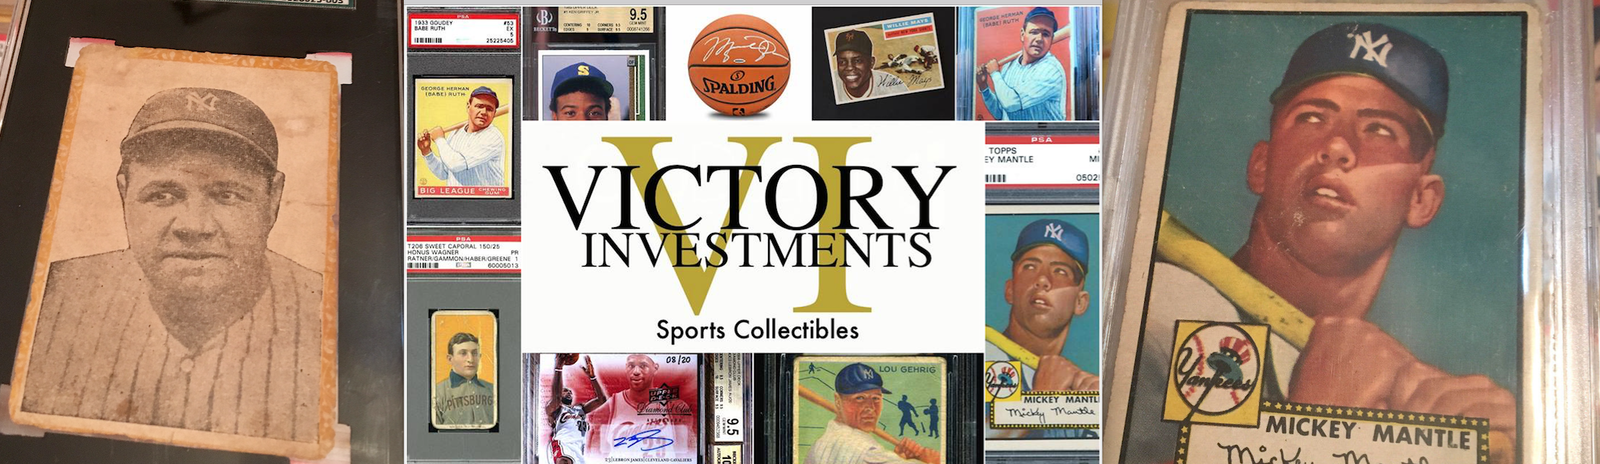 Victory Investments